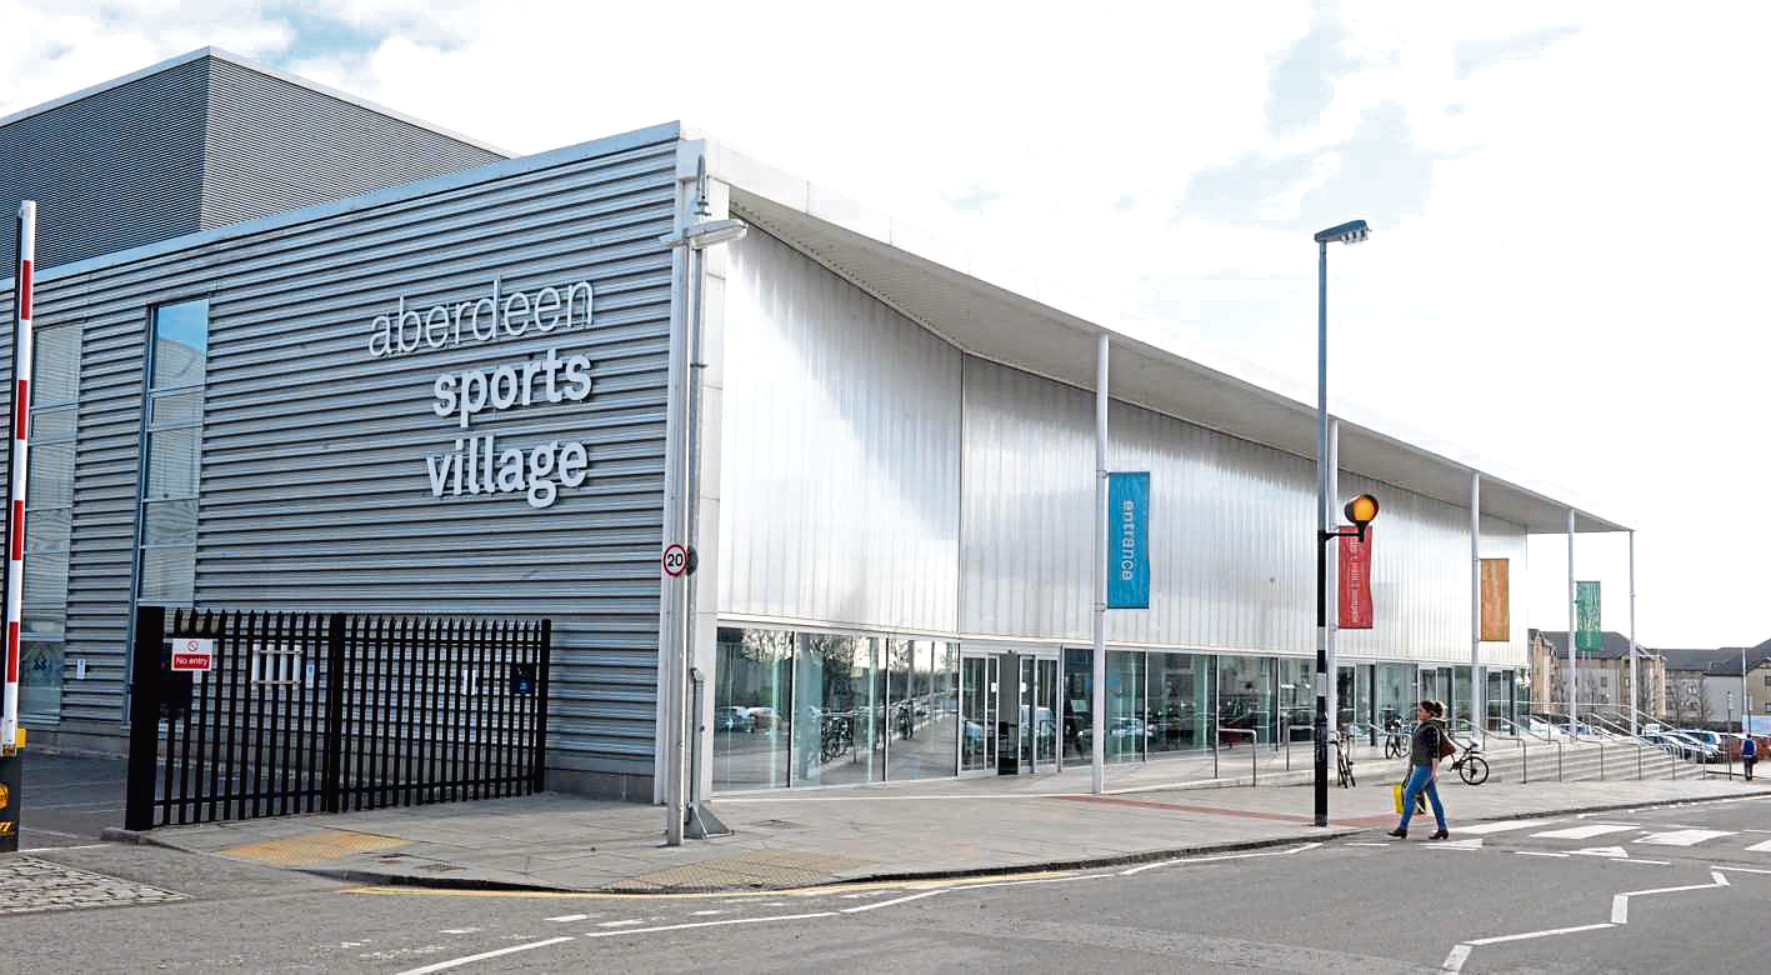 Aberdeen Sports Village has told staff it is looking to make cuts